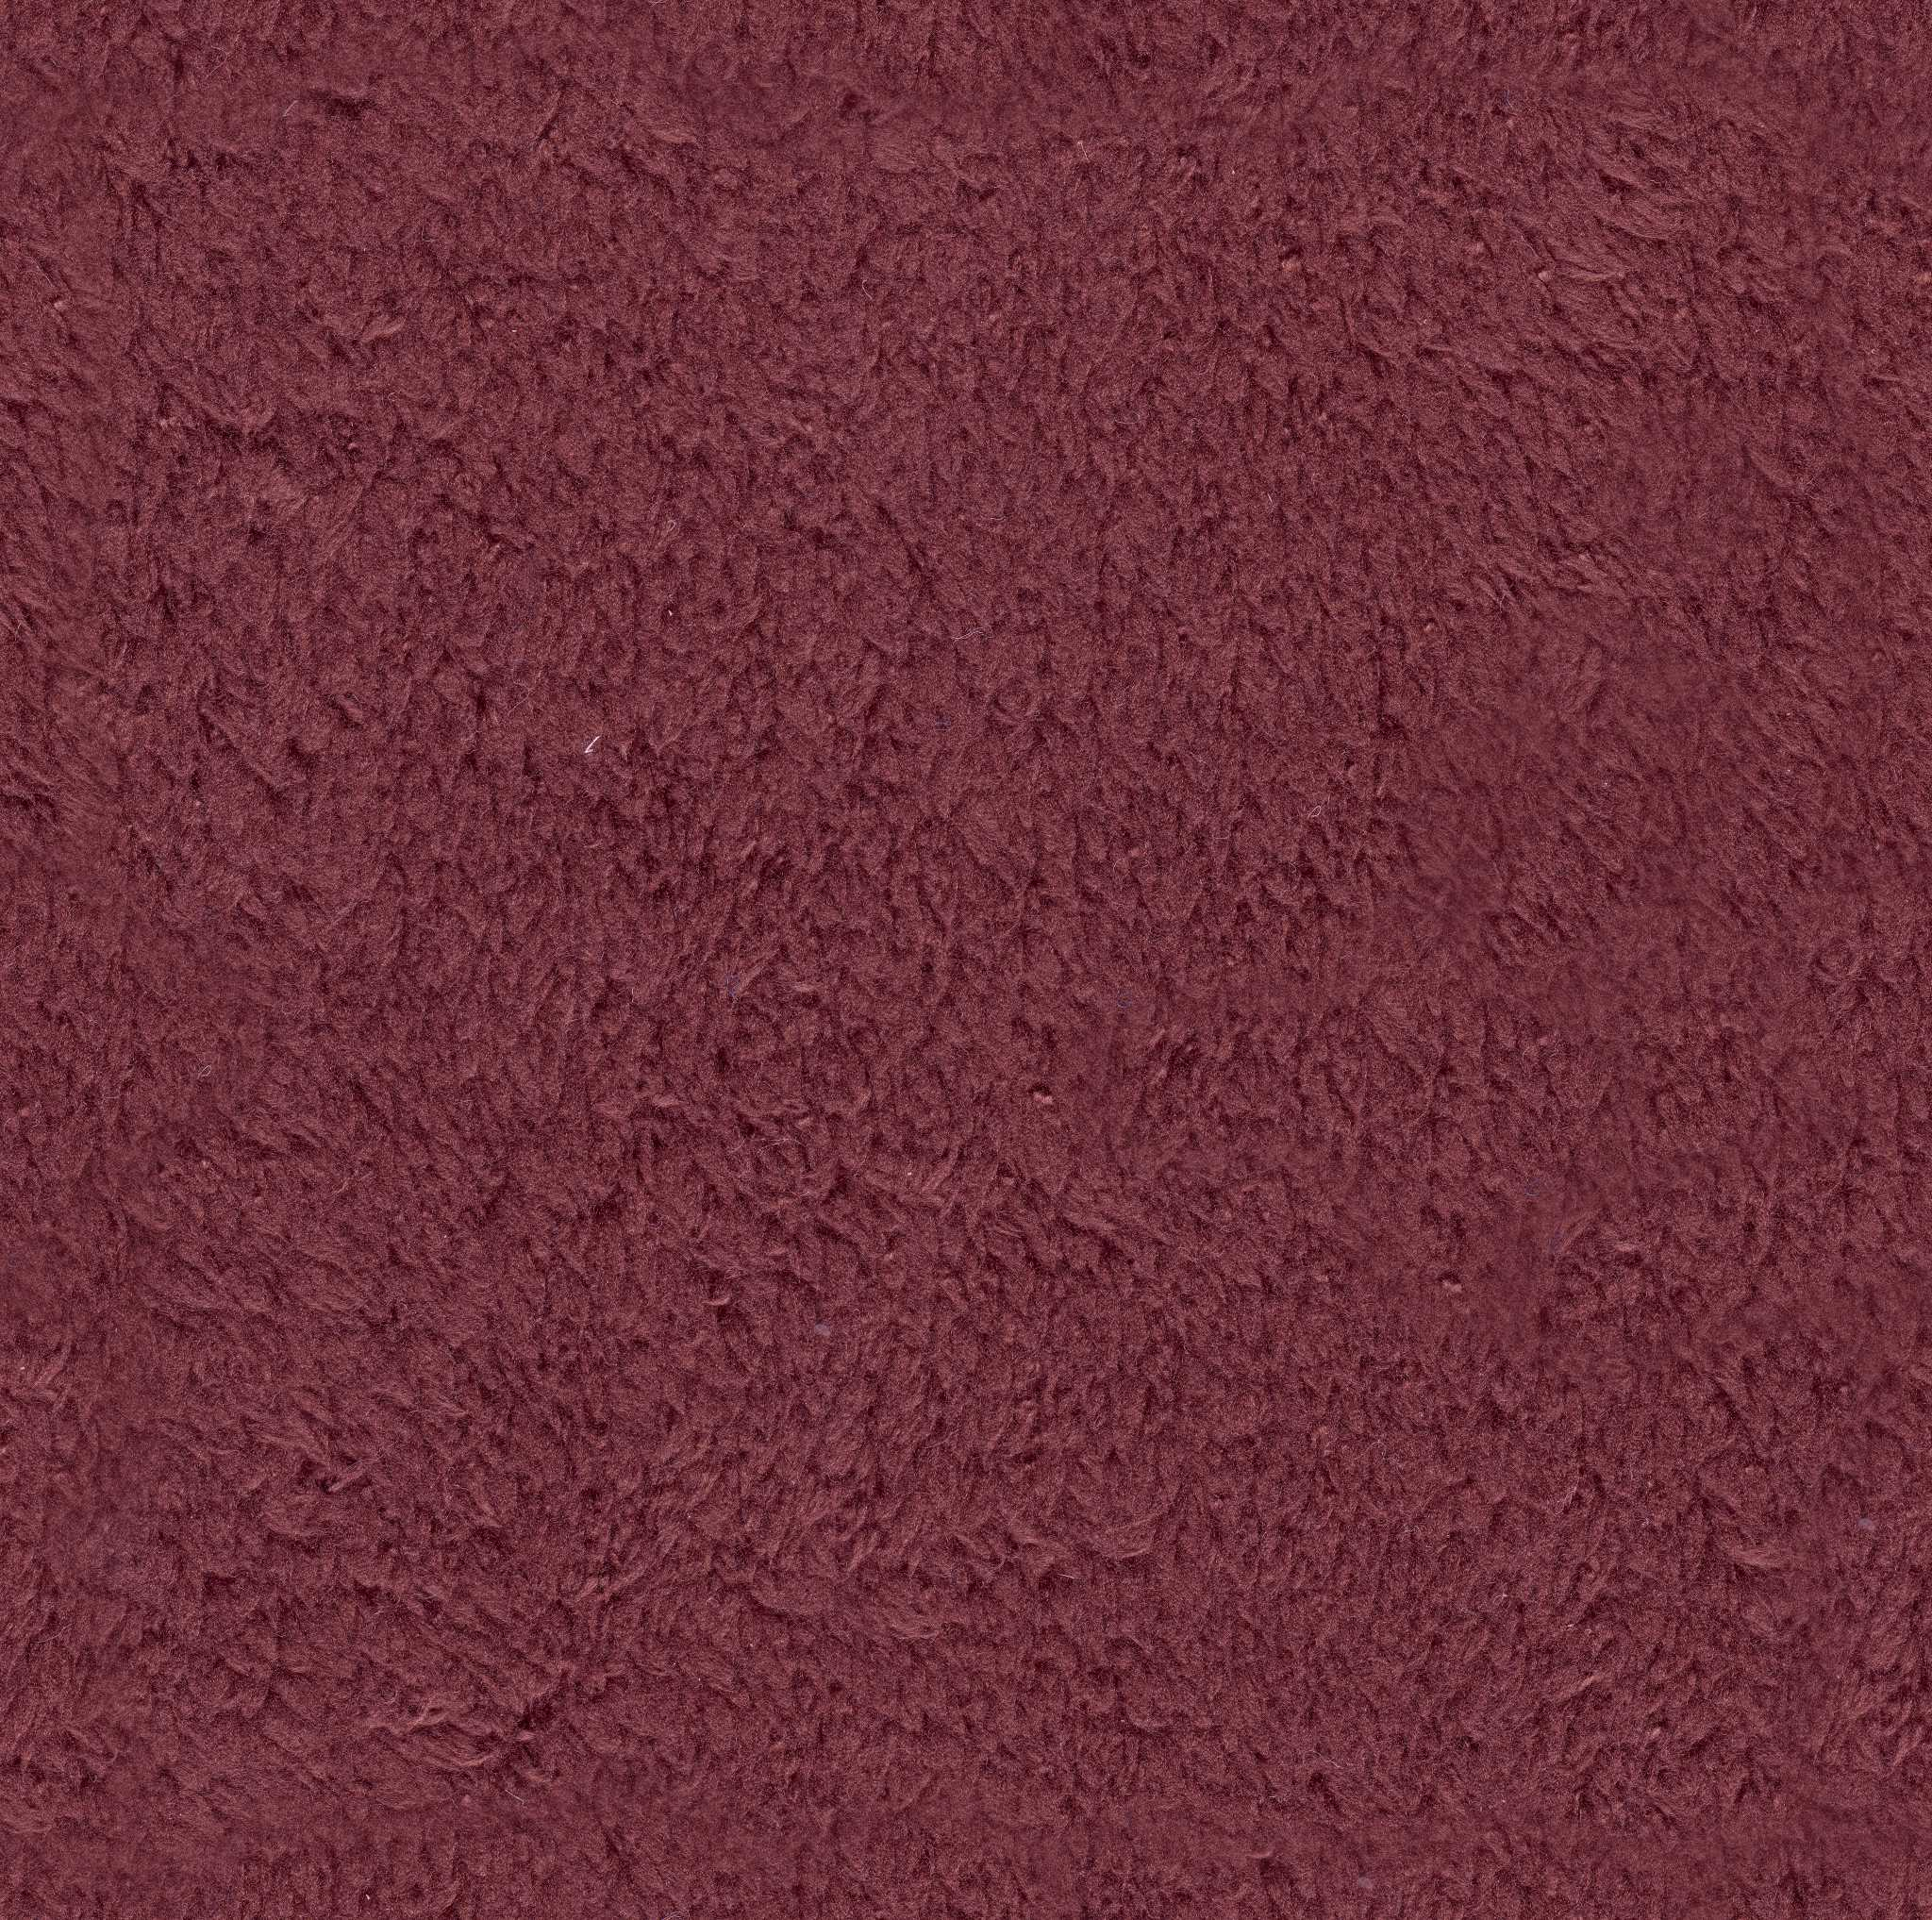 red carpet texture. redcarpet_s.jpg red carpet texture a